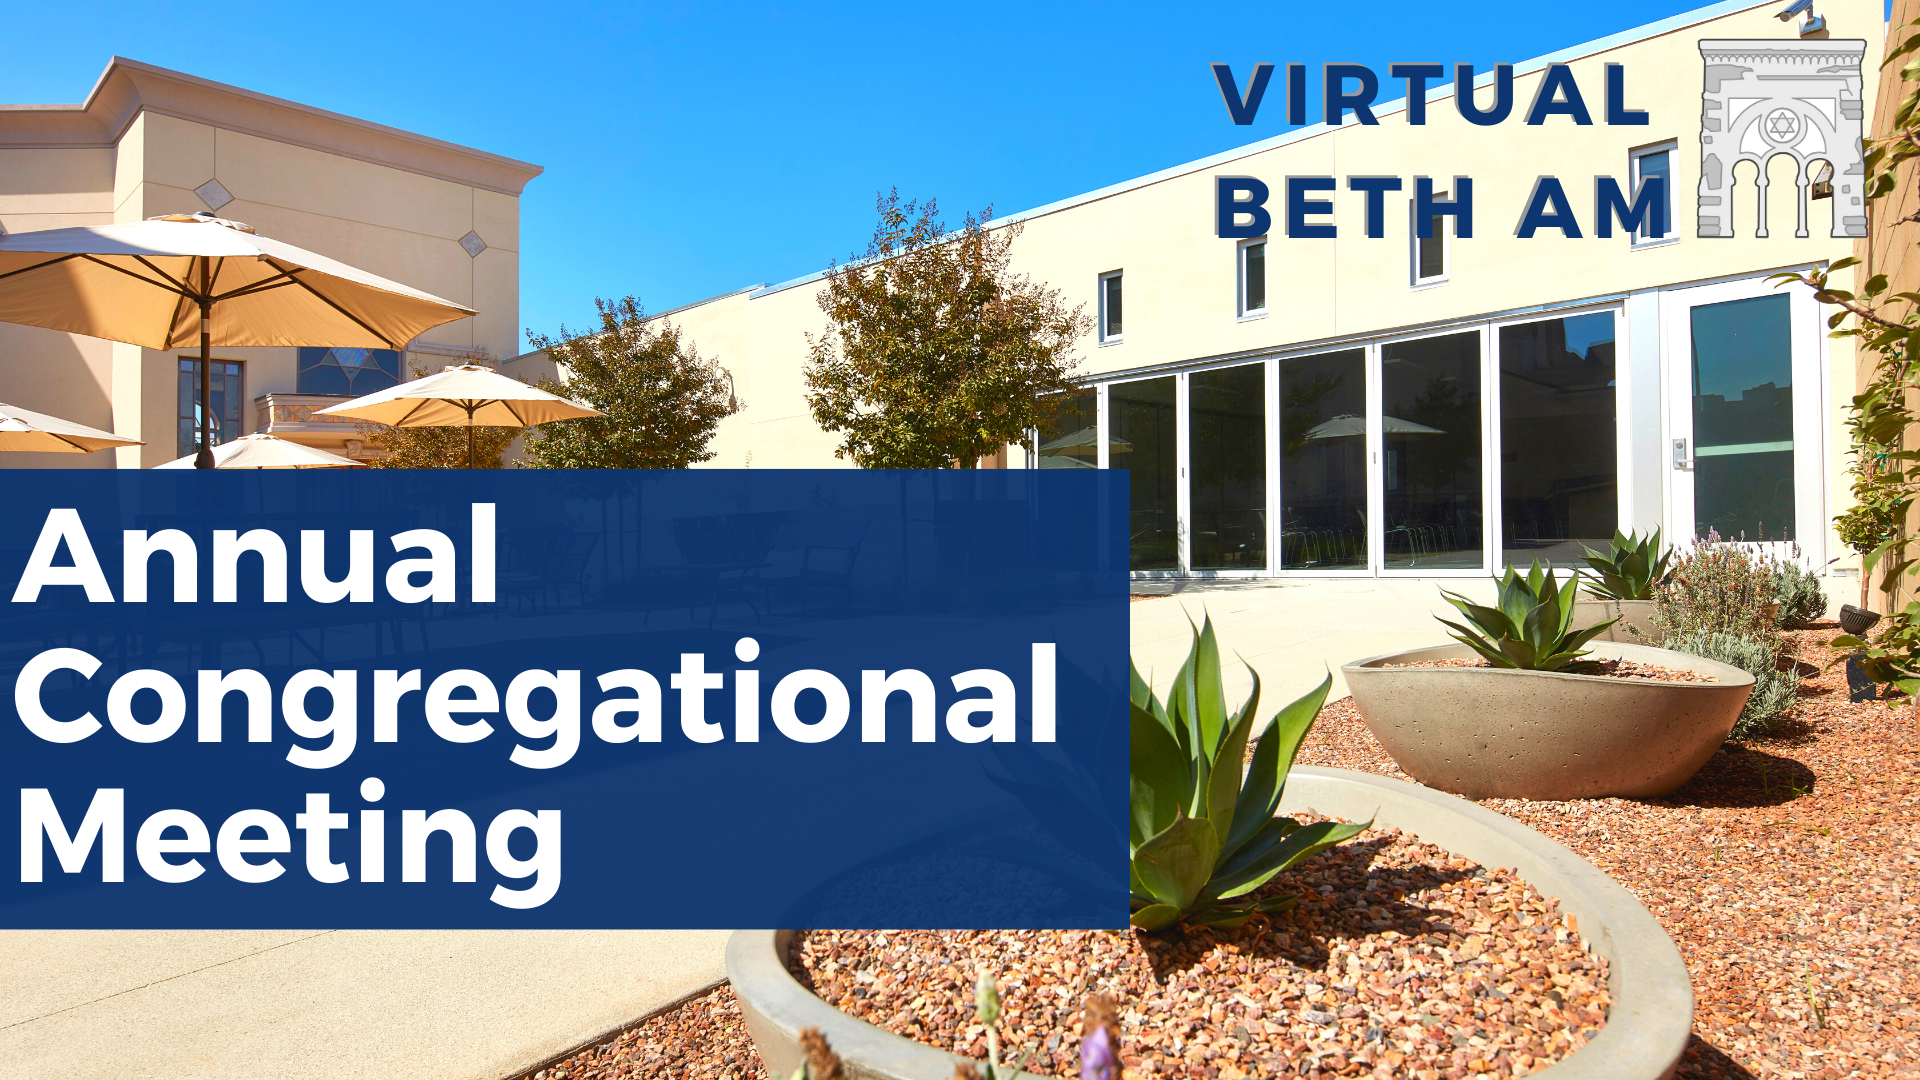 Banner Image for Annual Congregational Meeting (virtual)